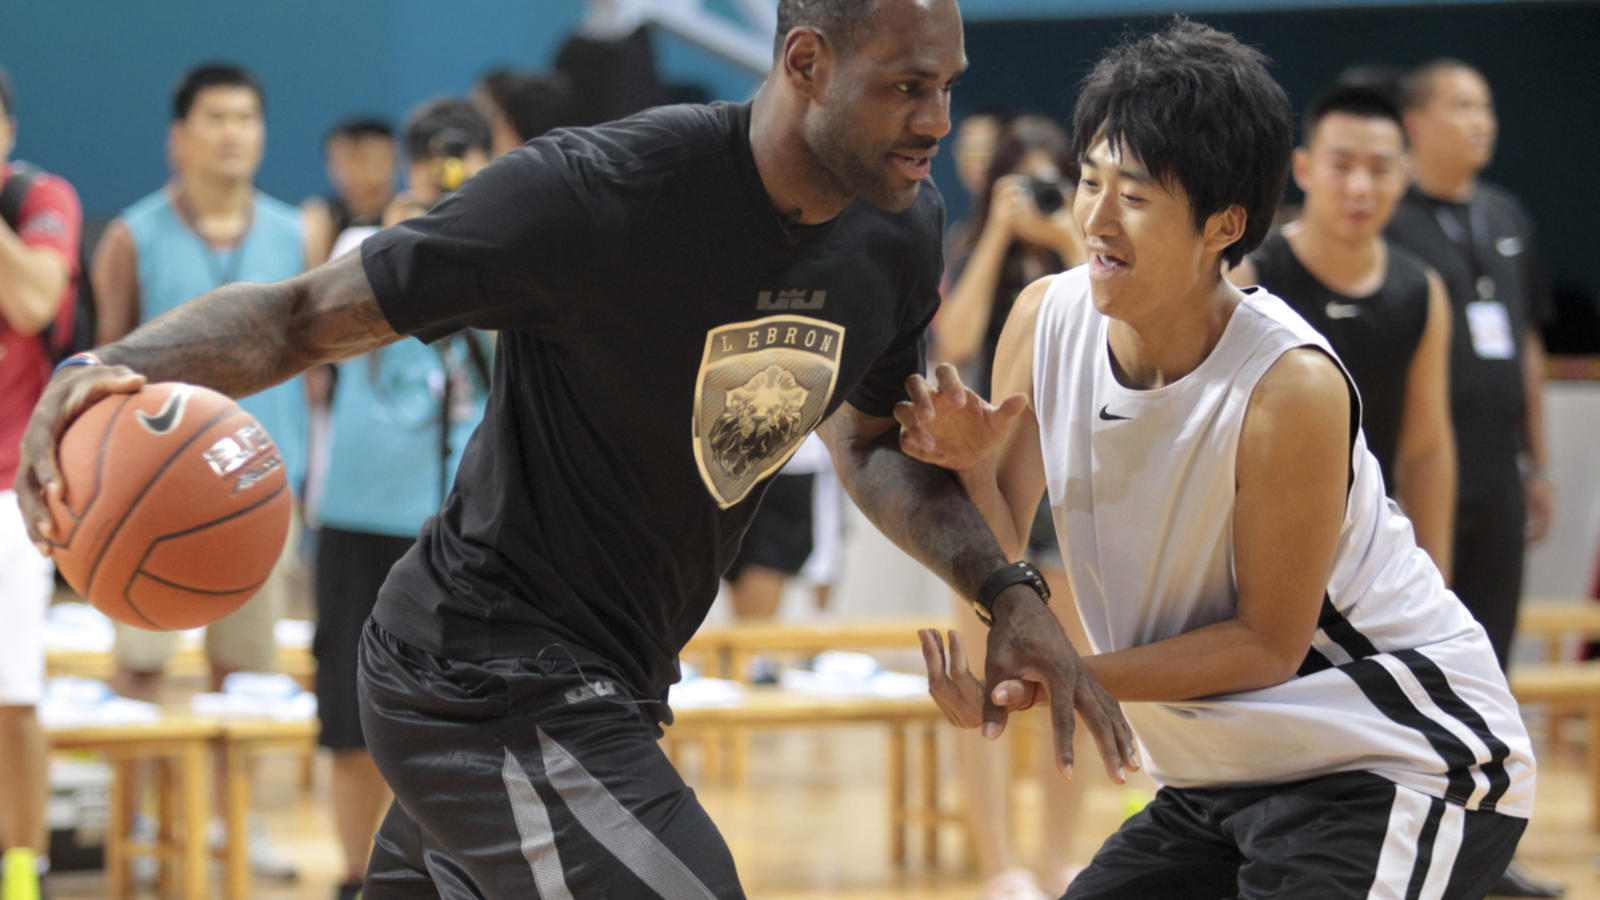 LeBron_BJ_Clinics_2